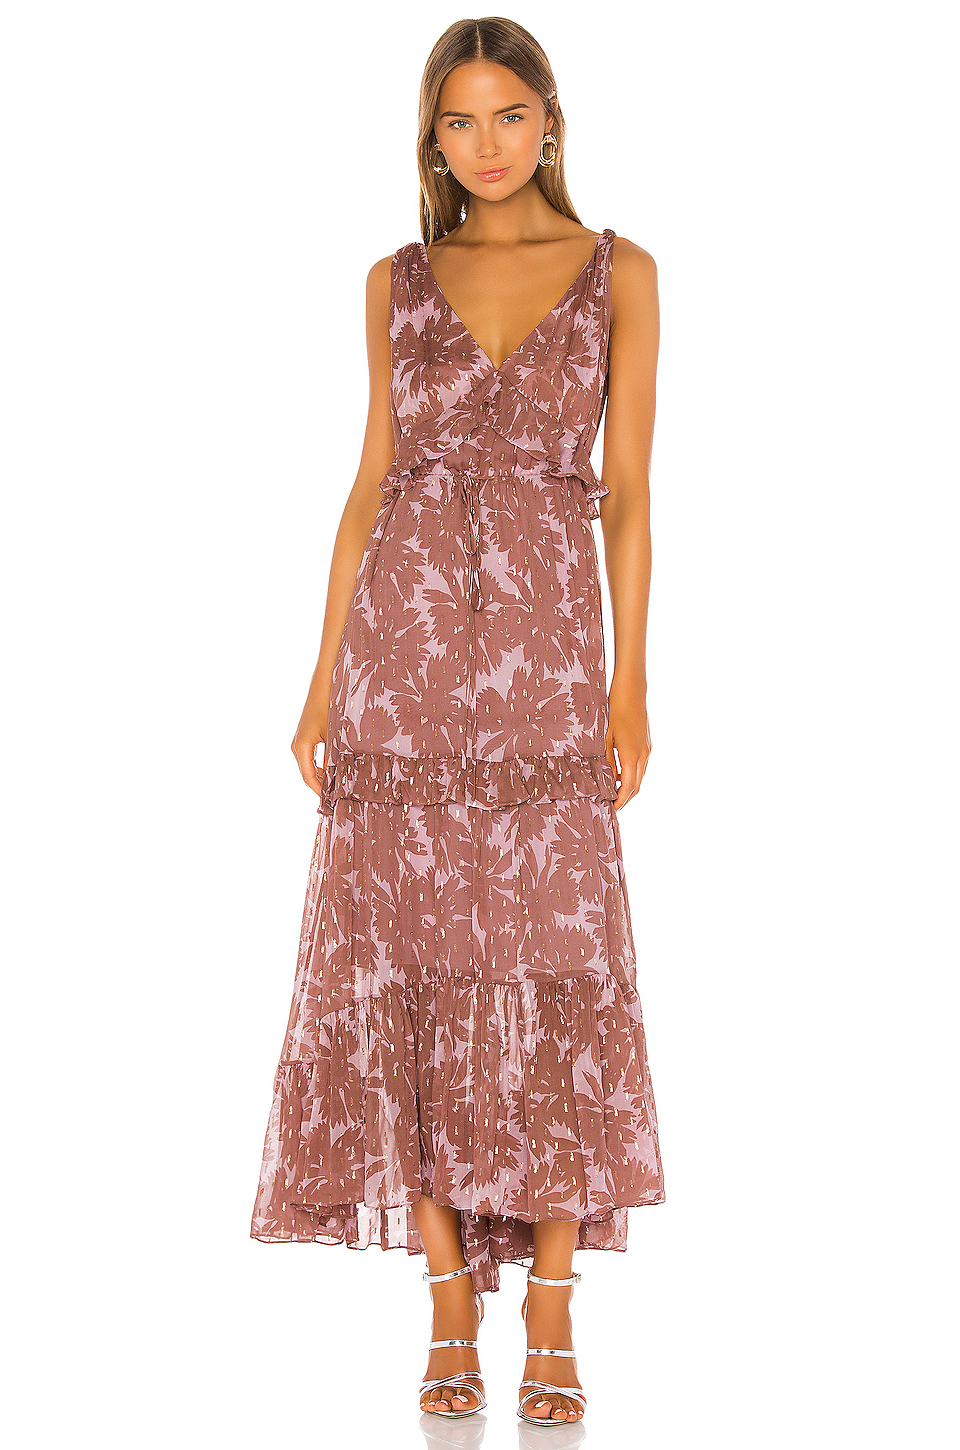 Diane von Furstenberg Misha Dress